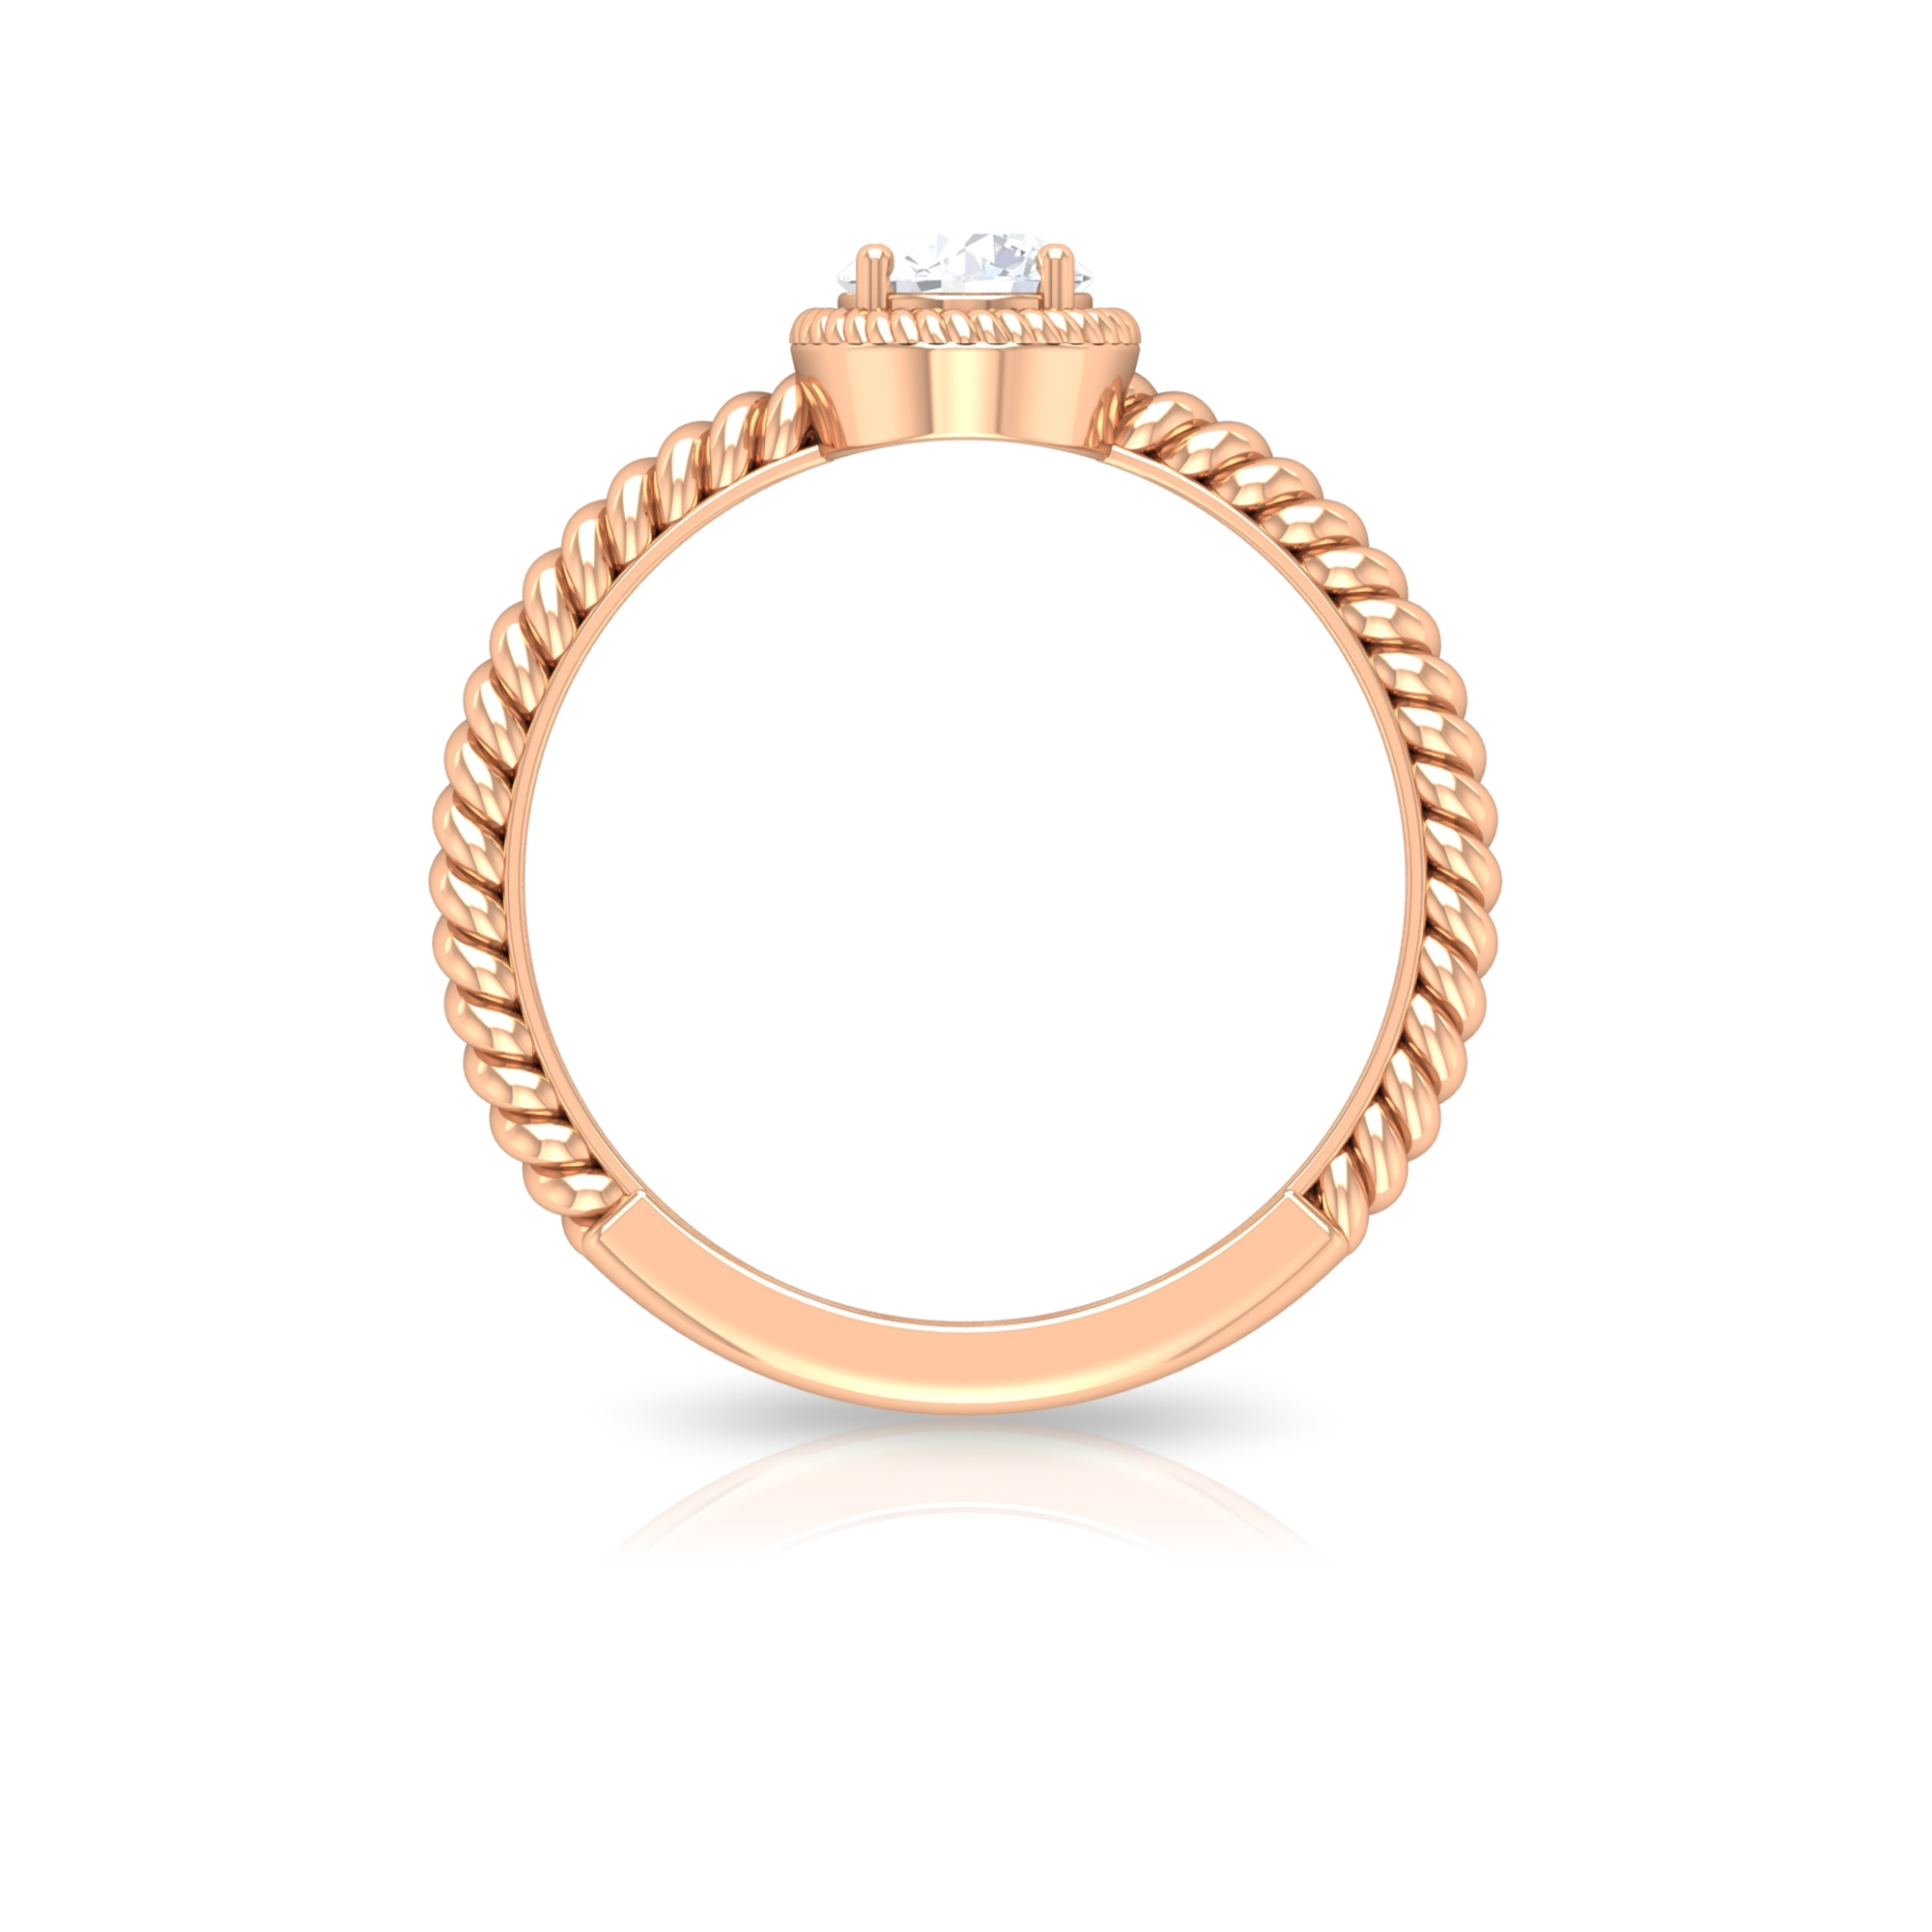 5 MM Round Cut Diamond Solitaire Ring with Gold Twisted Rope Band